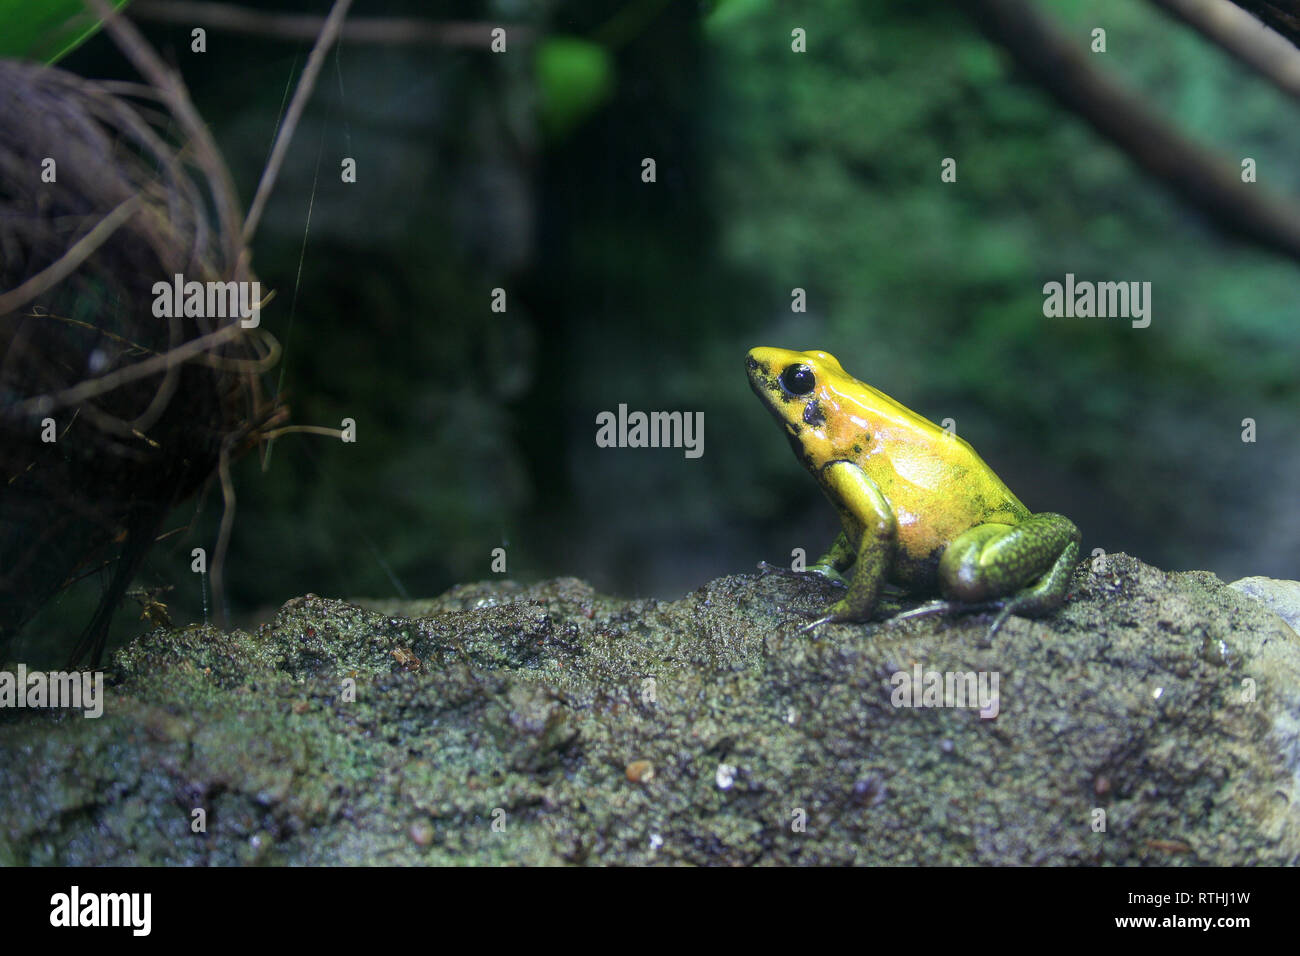 portret of yellow frog - Stock Image